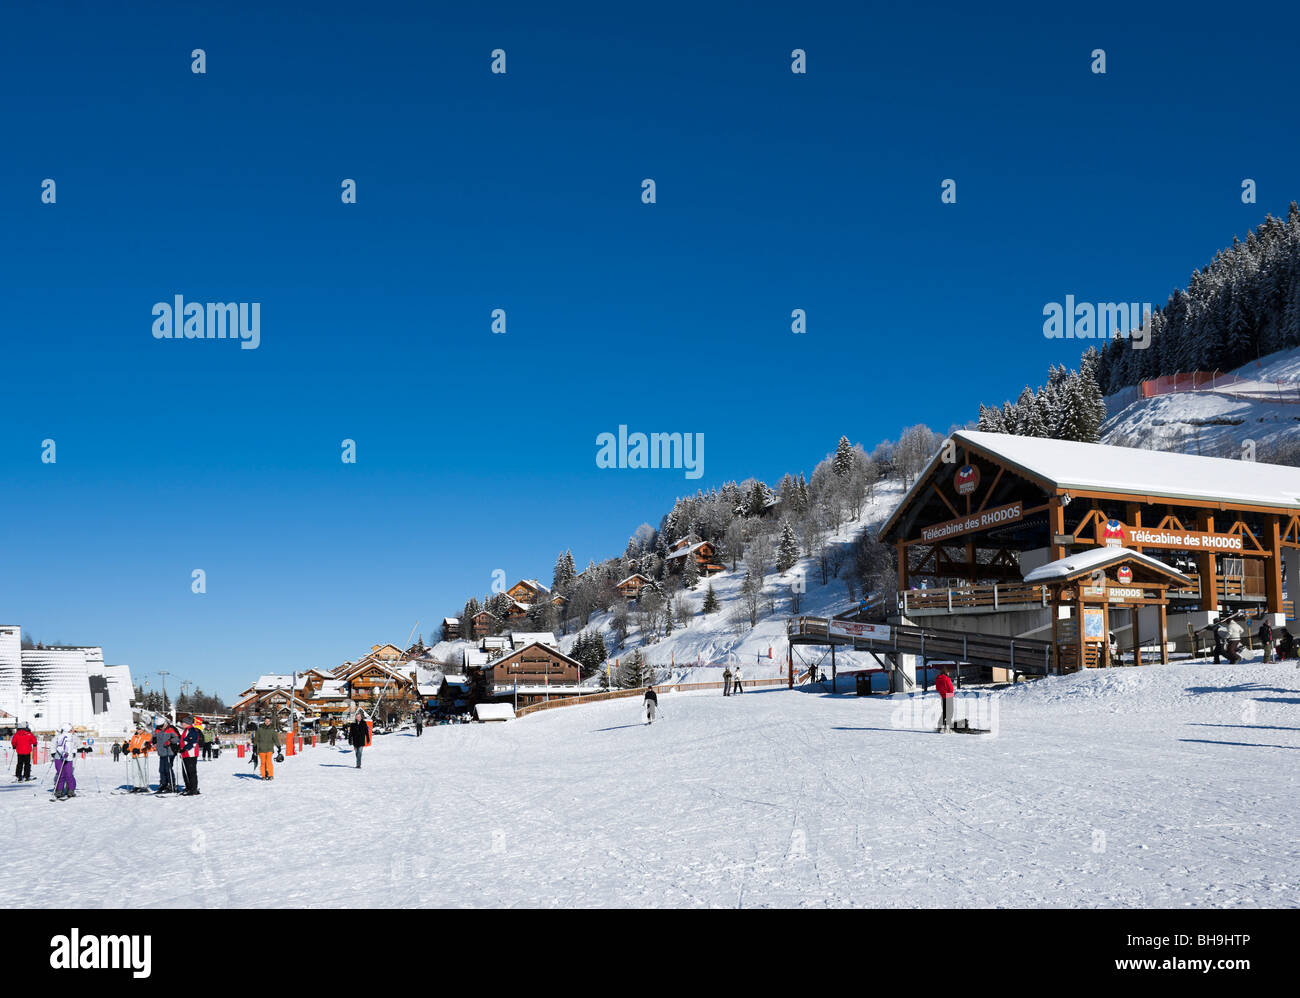 The Rhodos telecabine lift in the centre of Meribel, Three Valleys, Tarentaise, Savoie, France - Stock Image